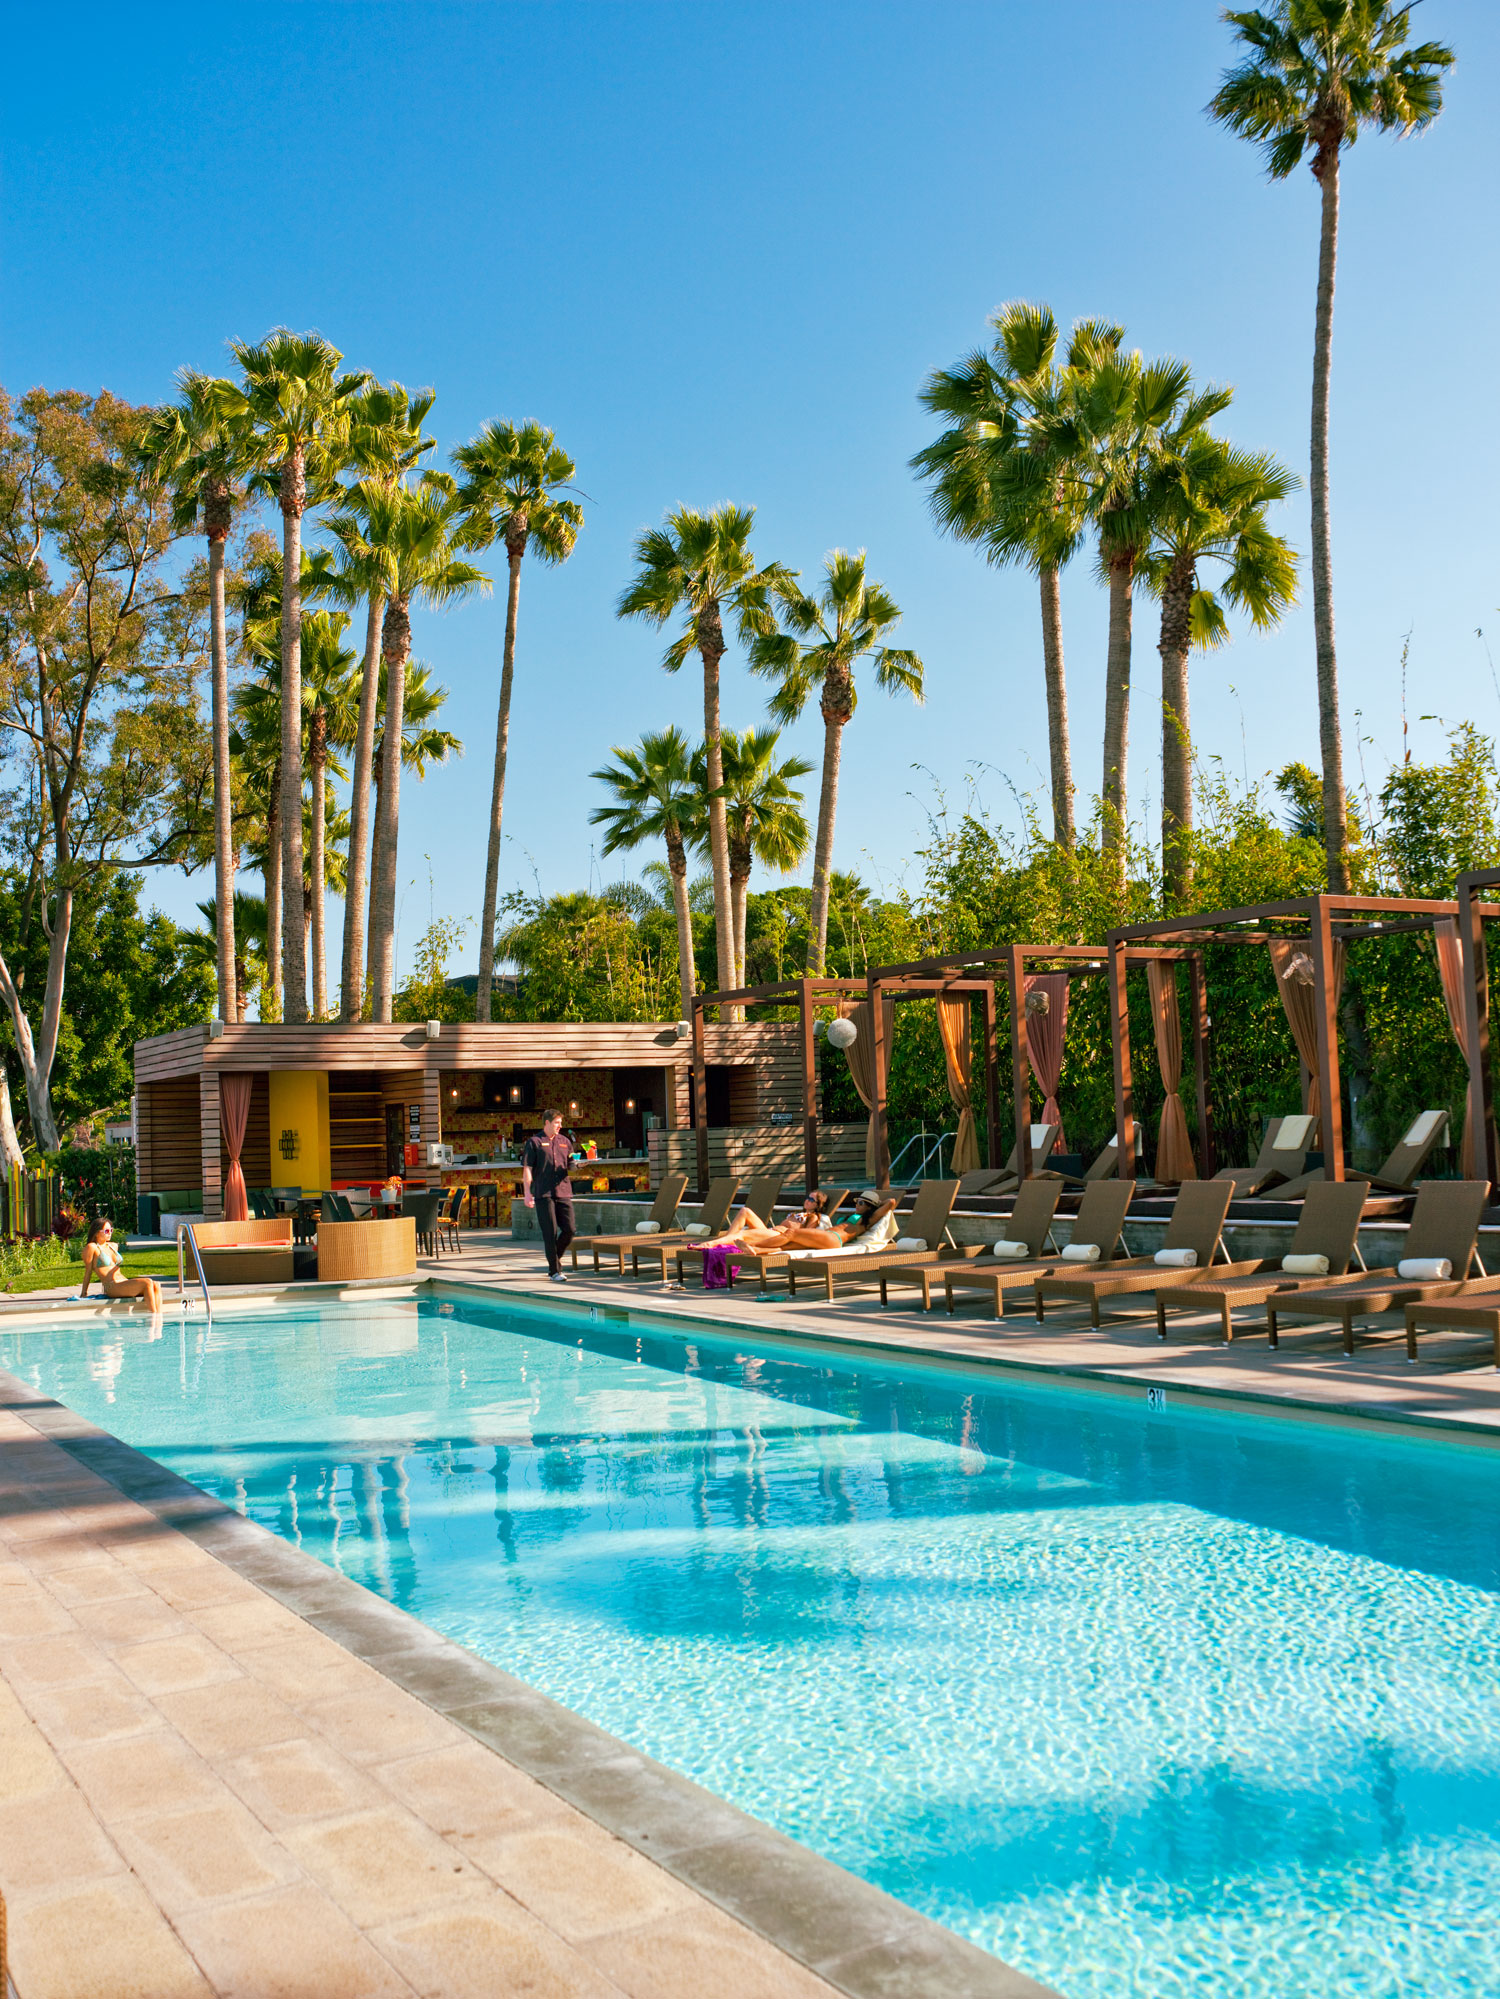 The West's Best Hotel Deals